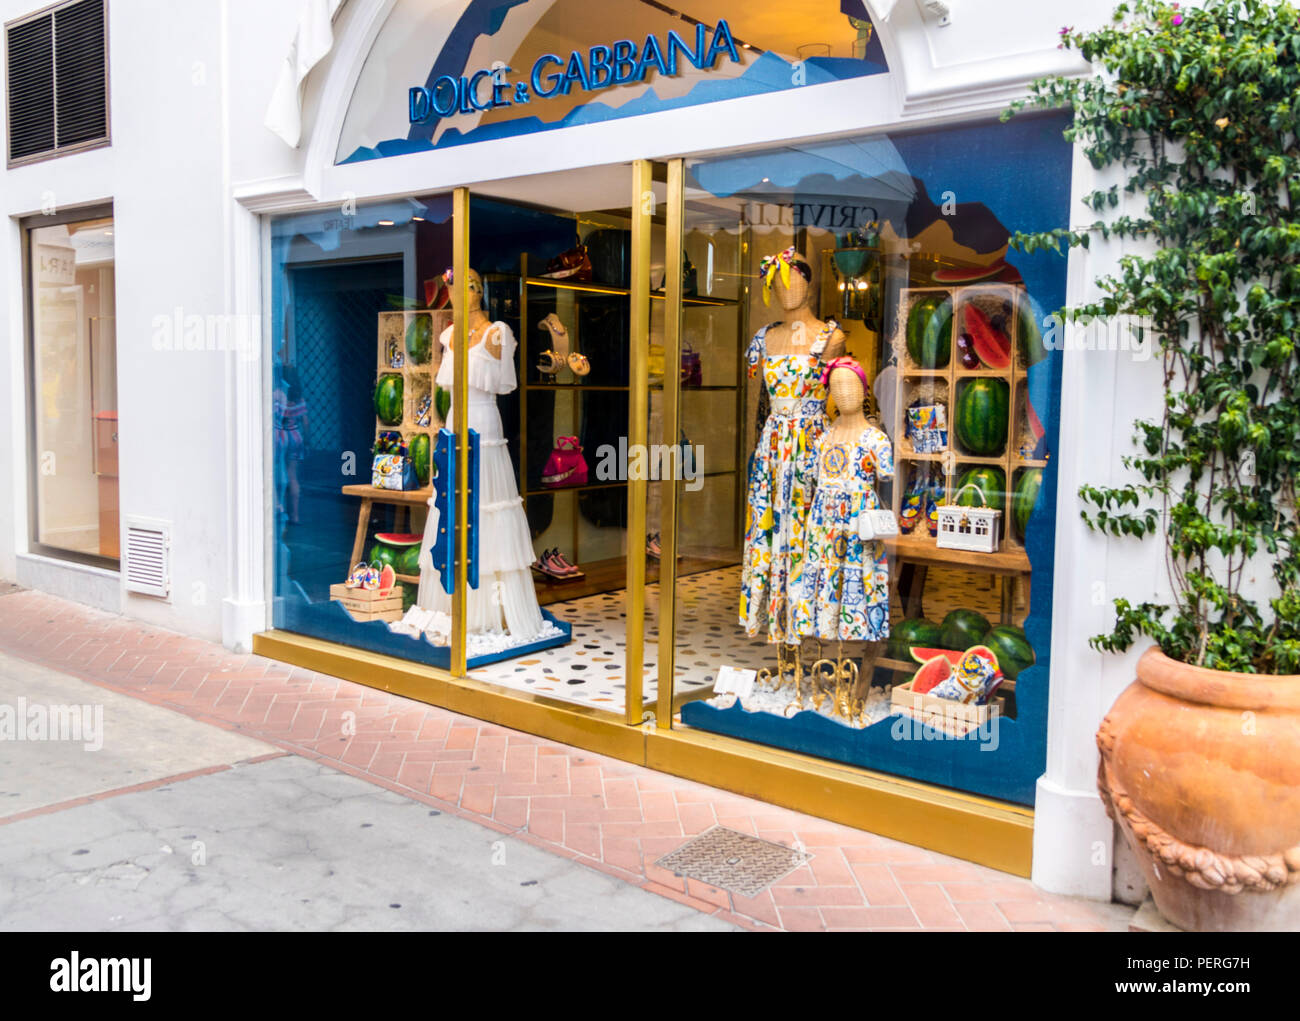 Dolce & Gabbana Store Shop Capri Italy Europe expensive lifestyle rich concept wealthy living, abundance gold blue store front - Stock Image